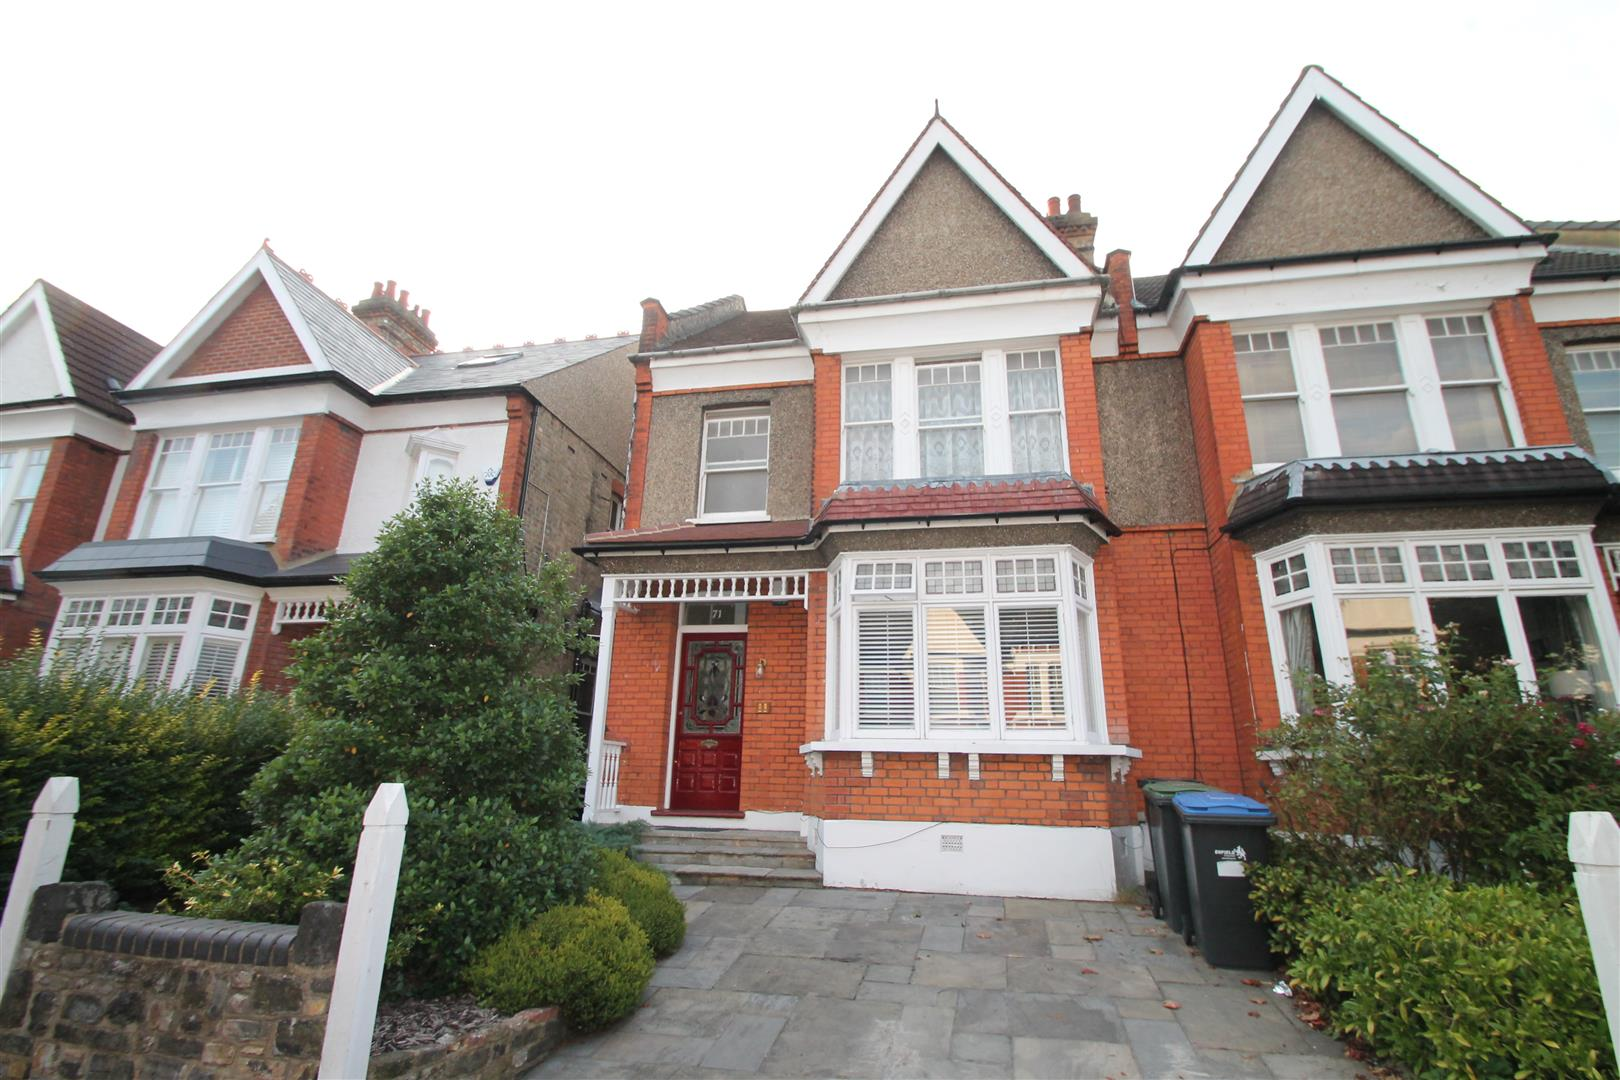 3 Bedrooms Flat for sale in Old Park Road, Palmers Green, London N13